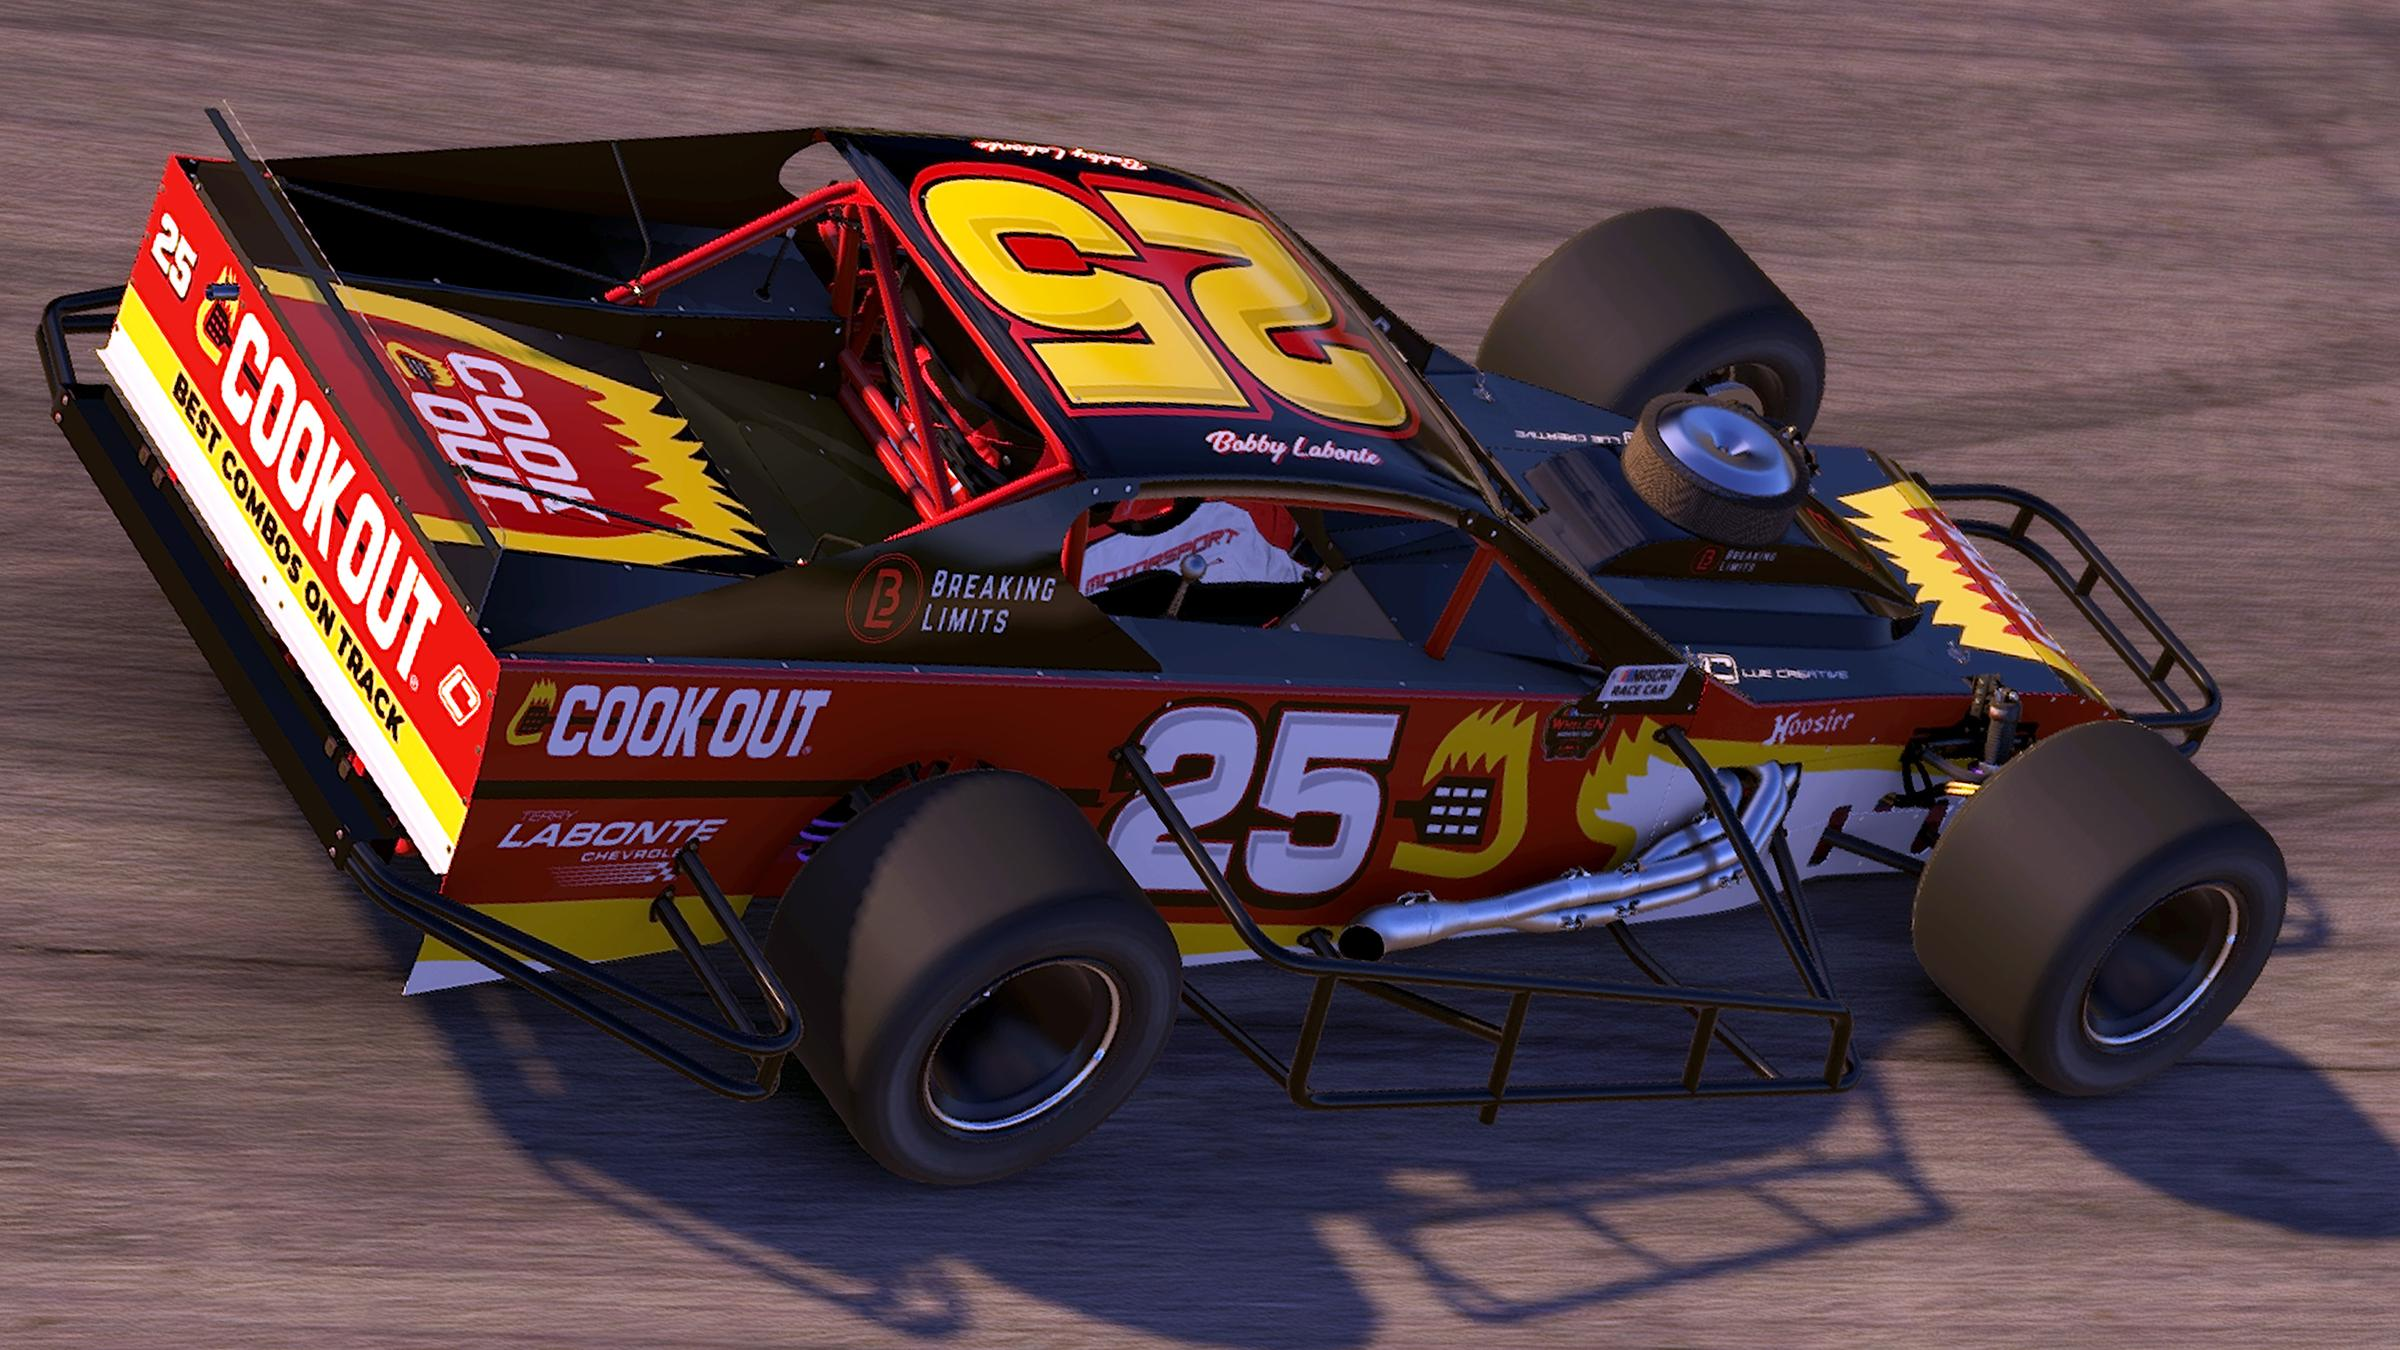 Preview of Bobby Labonte #25 Cook Out Racing Modified by Harris Lue